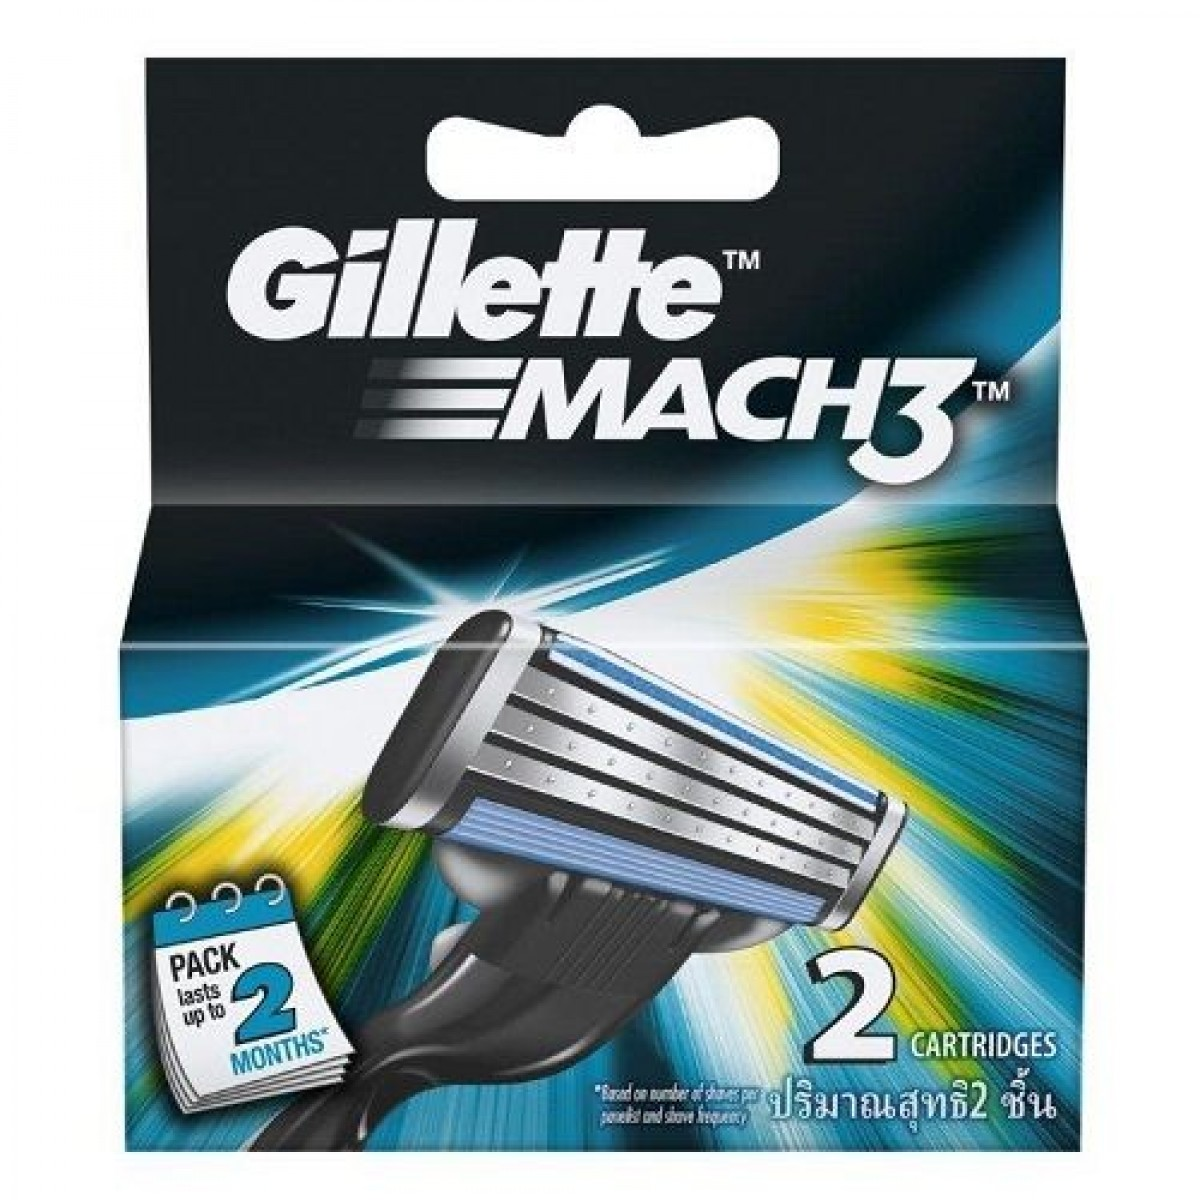 Gillette Mach 3 Cartridges 2pcs